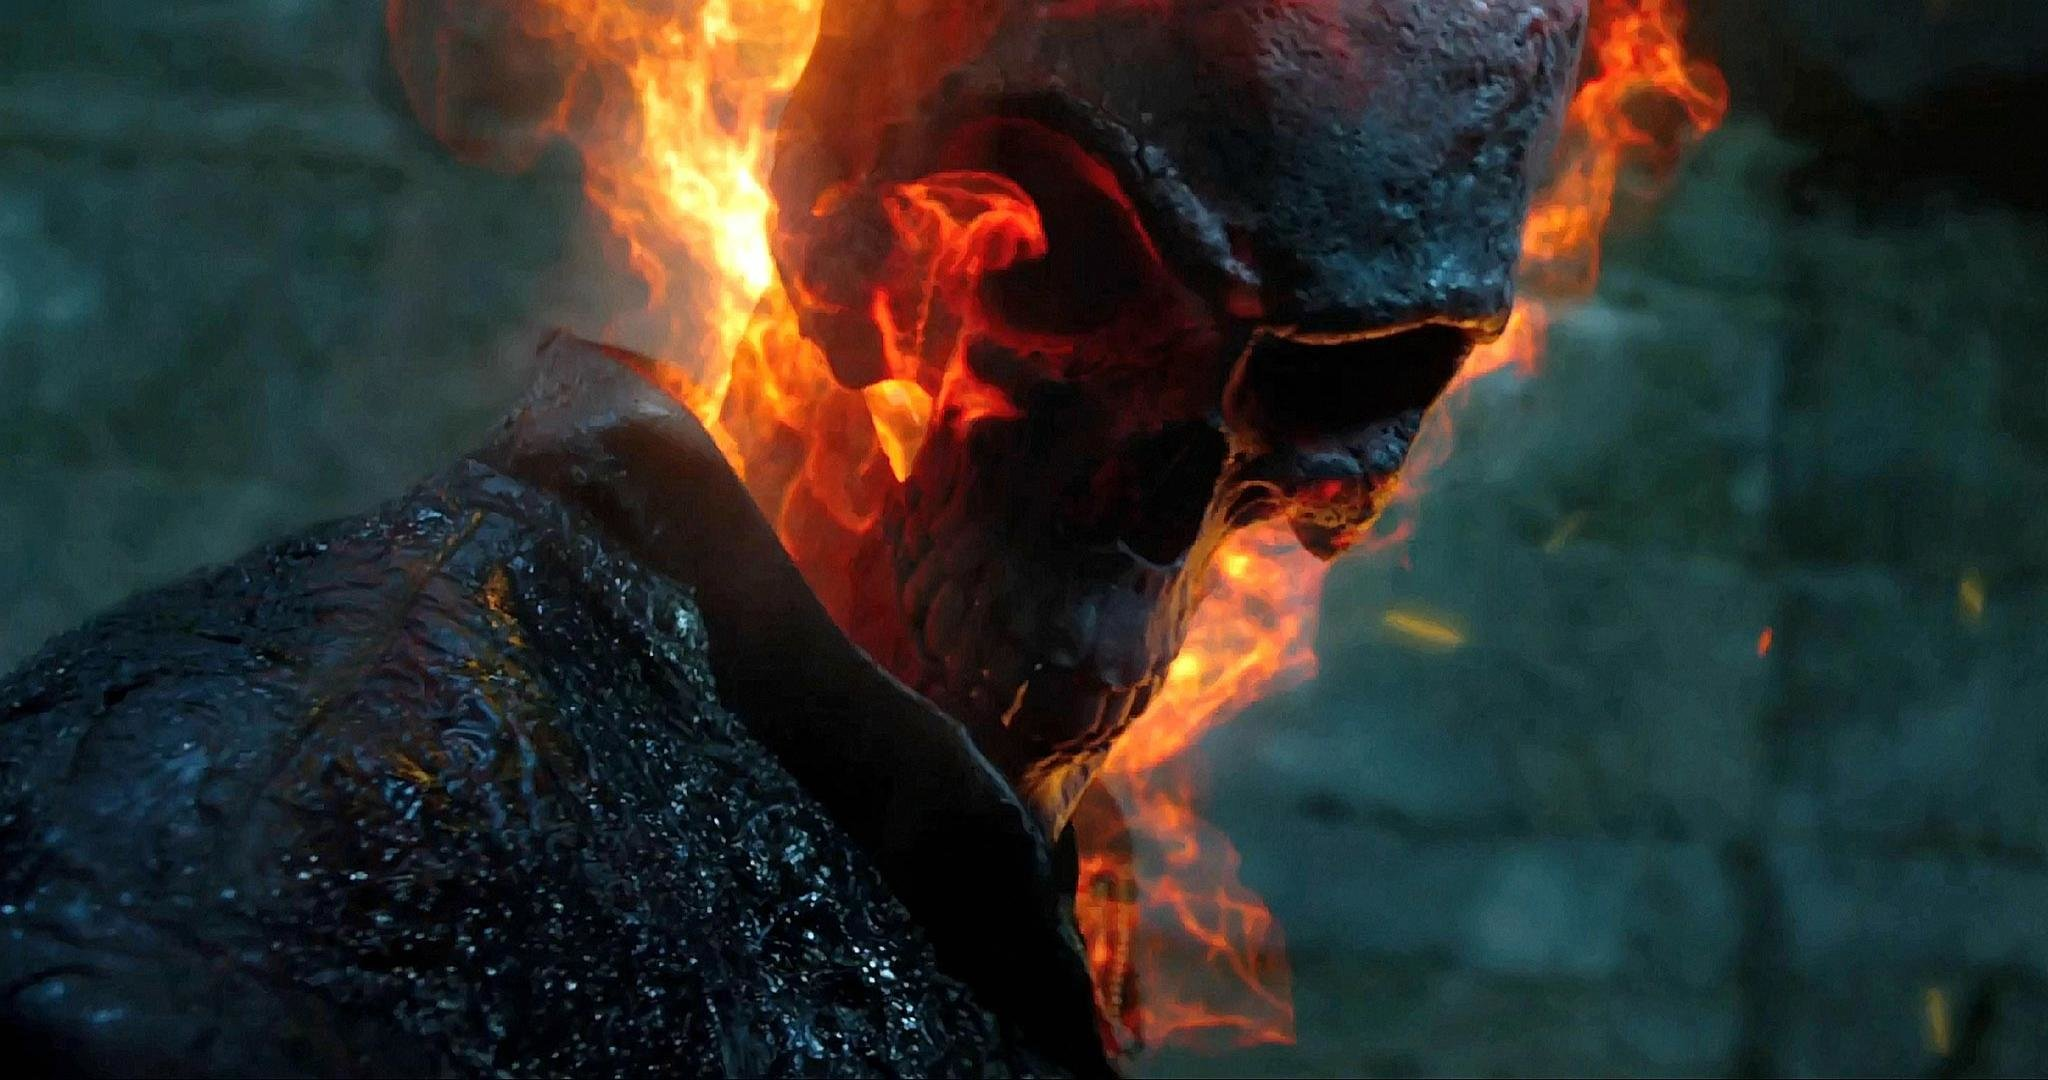 Ghost Rider Movie wallpapers HD for desktop backgrounds